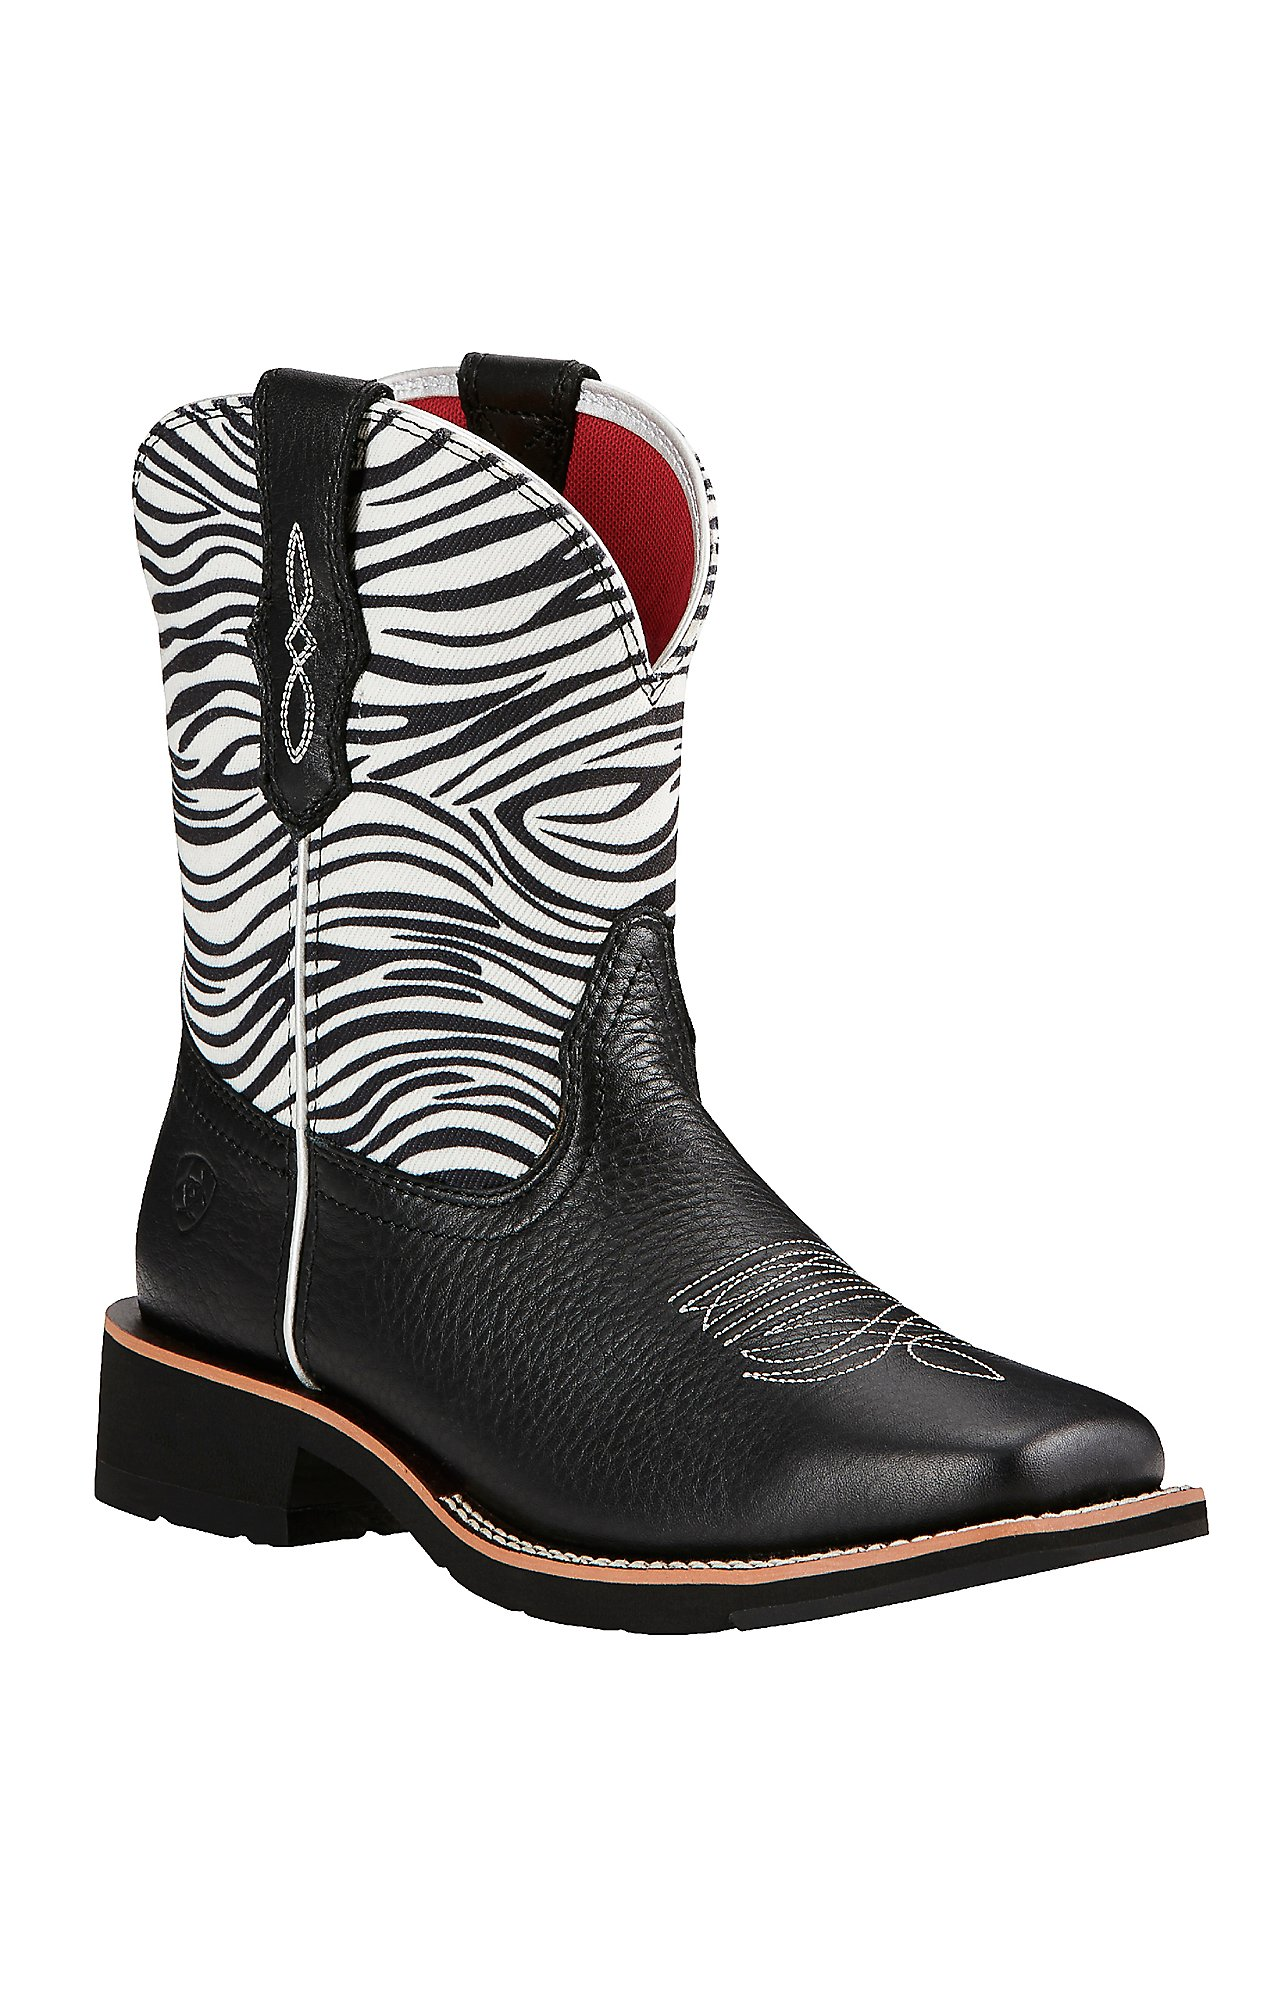 Ariat Fatbaby Heritage Women's Black with Zebra Print Upper Square ...